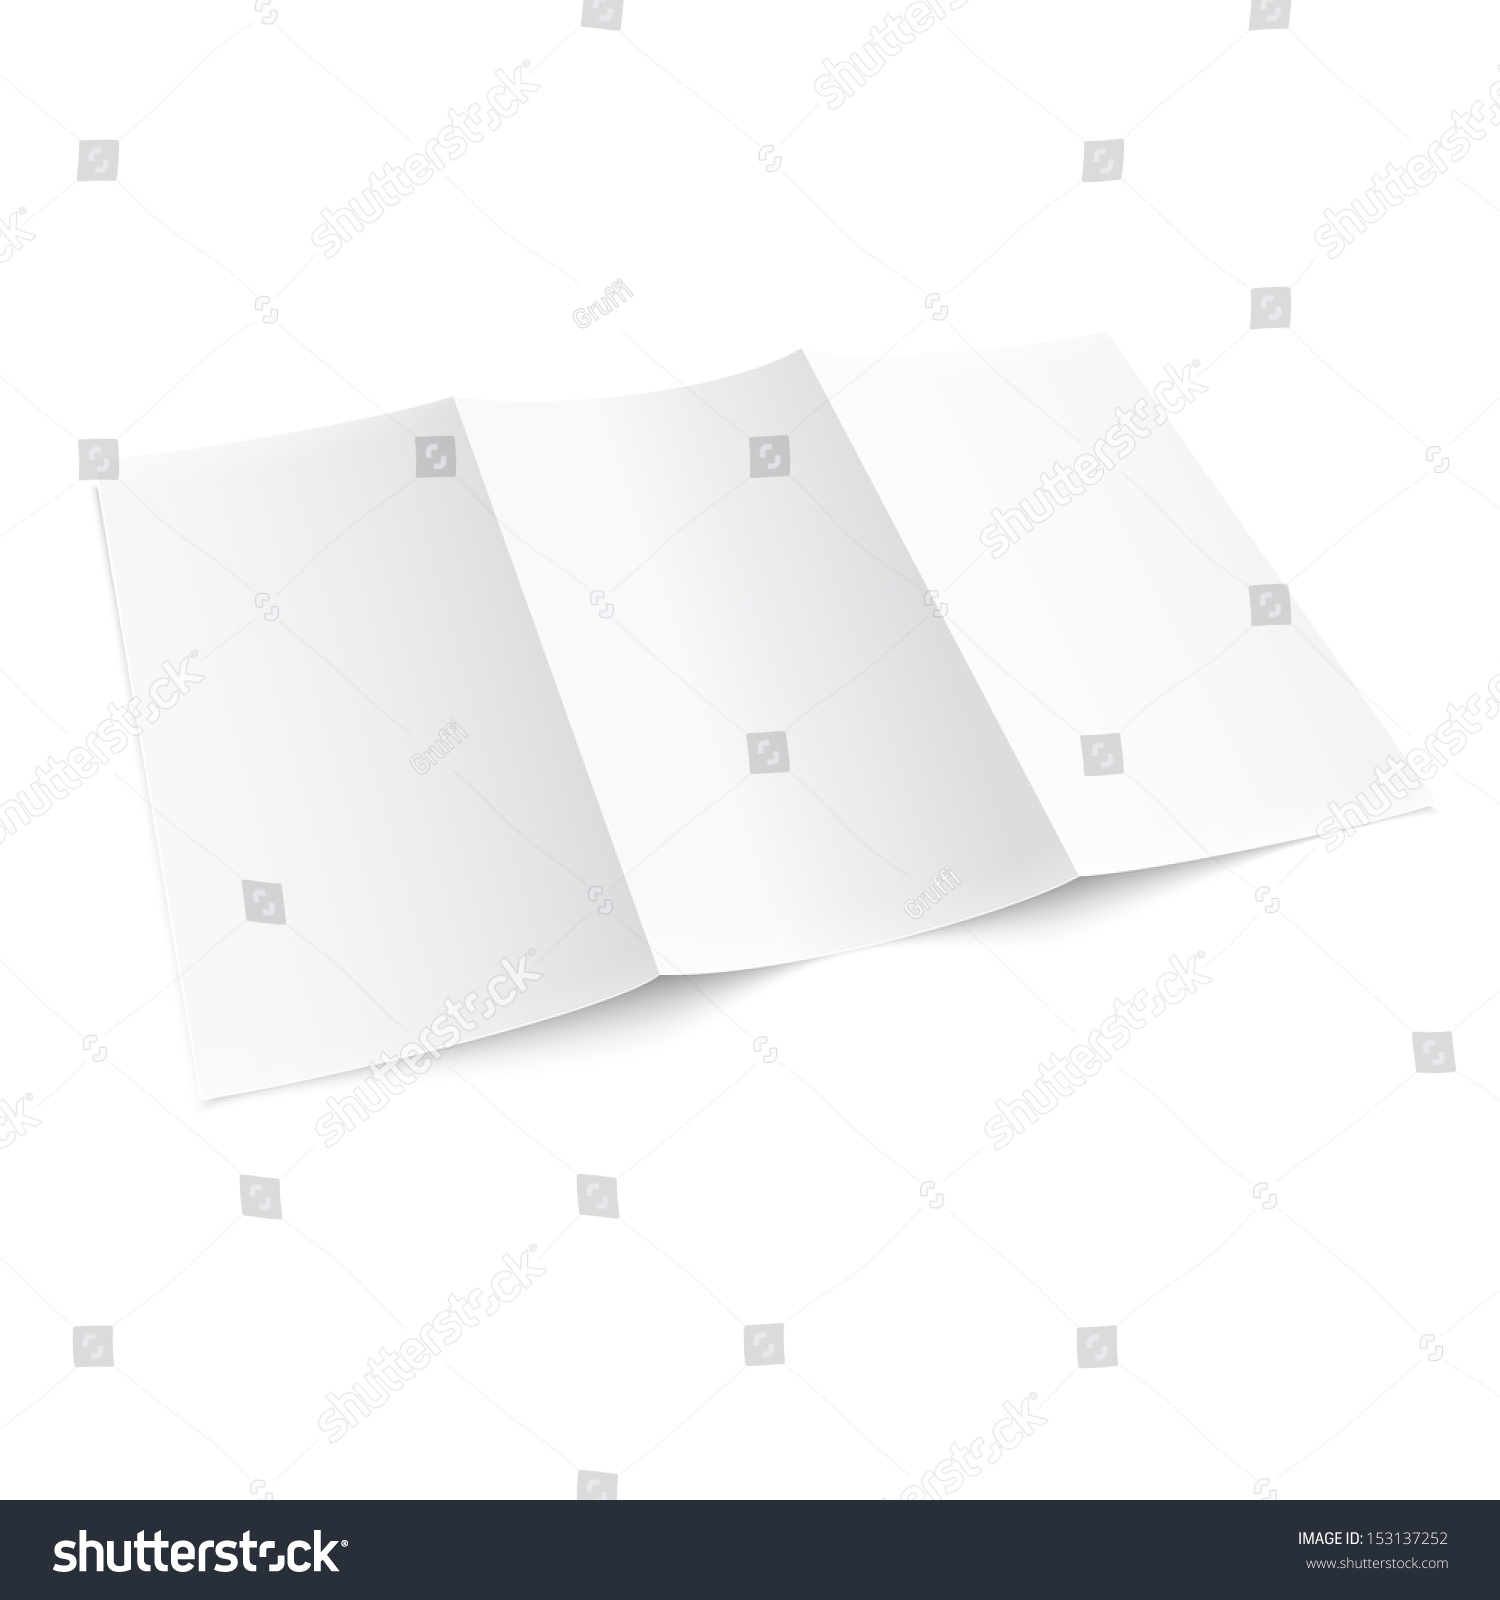 leaflet blank trifold paper brochure mockup isolated on white